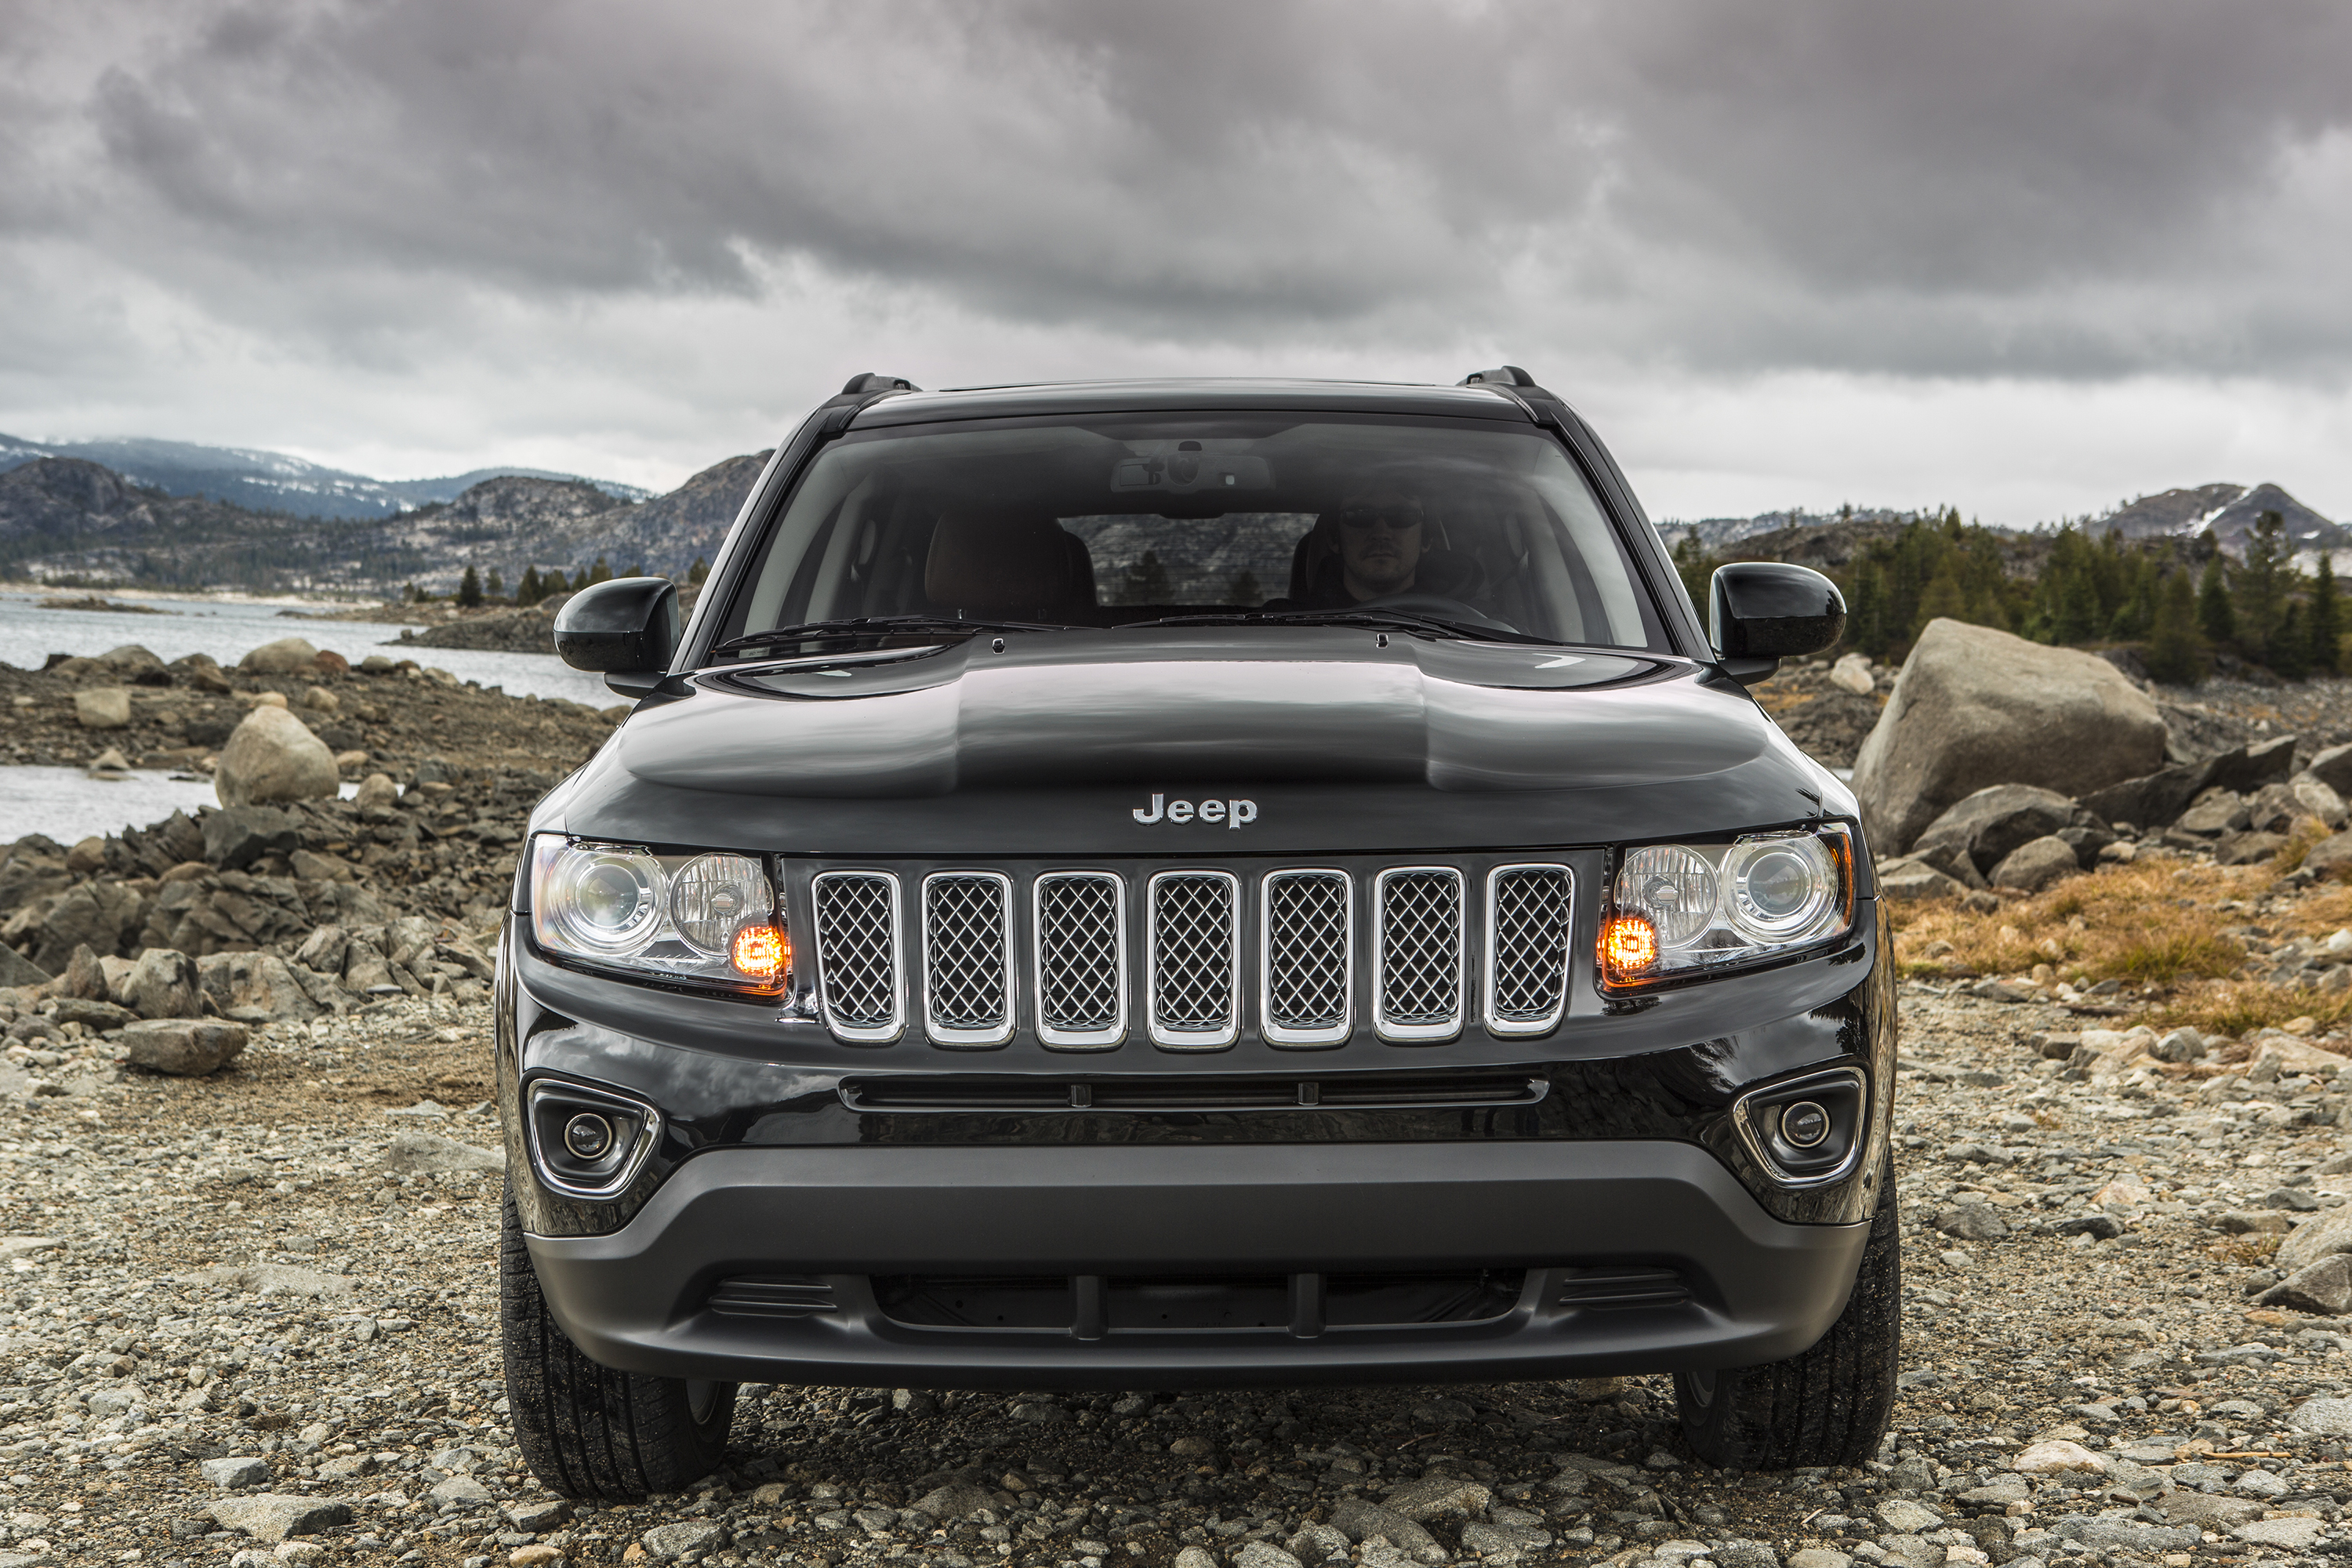 2019 Jeep Compass photo - 2